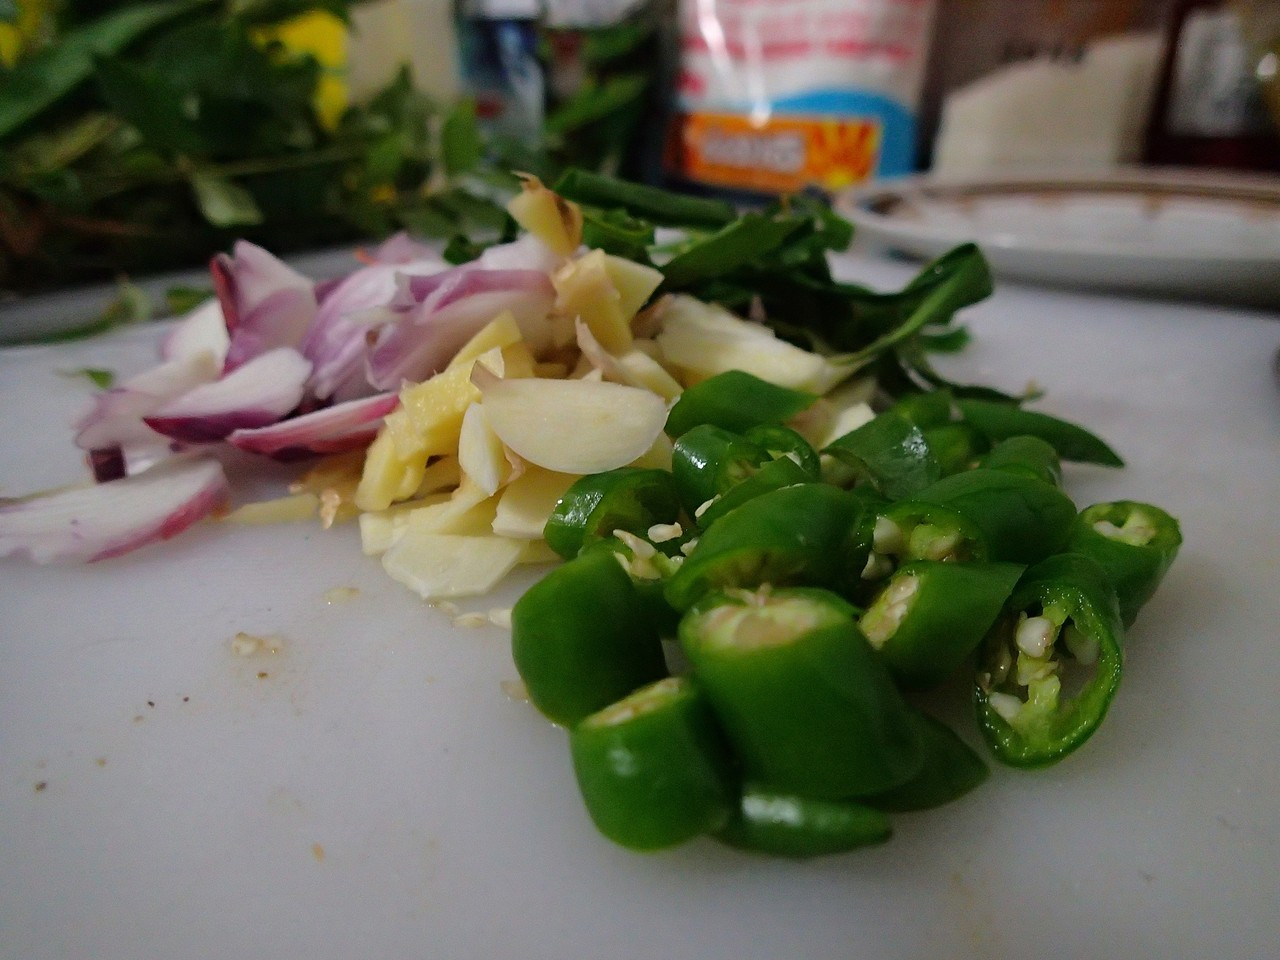 Ingredients for frying: green chilli, onion, garlic, ginger, rumpeh leaves, curry leaves